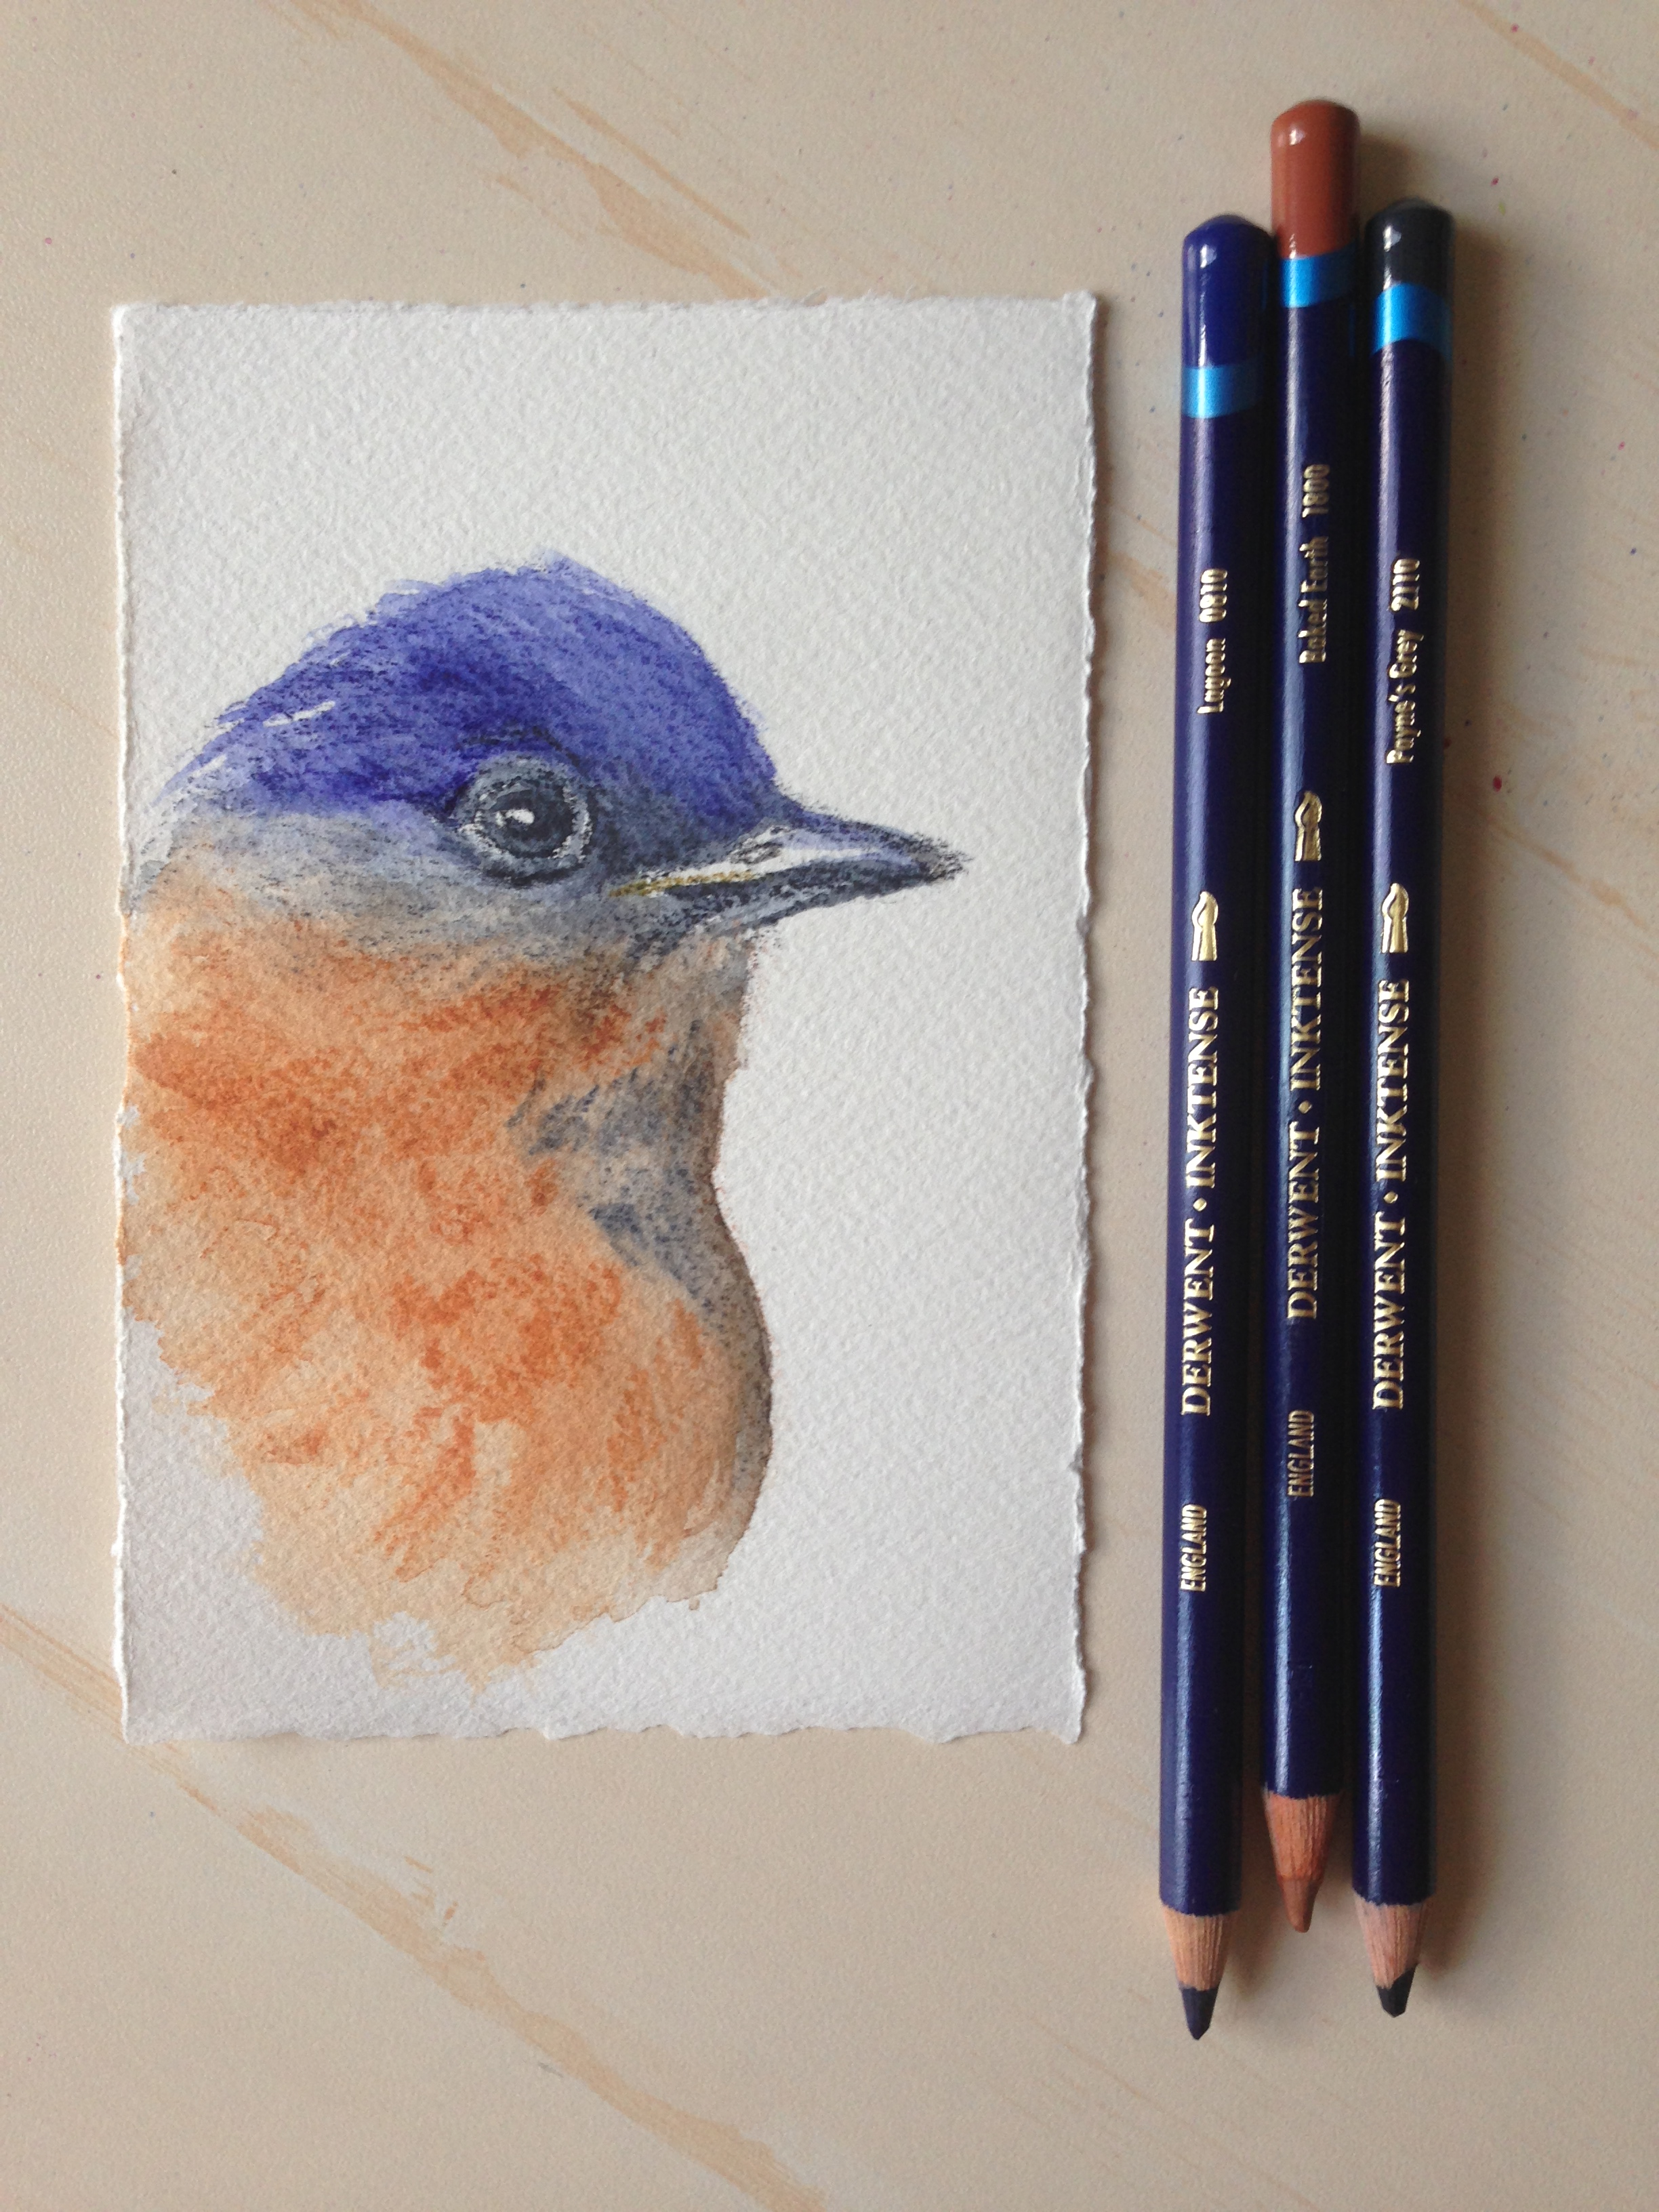 I Find Watercolor Pencils A Quick Fun And Easily Portable Way To Enjoy Art Anywhere Simply Sketch Your Subject As You Would With Pencil Liquefy